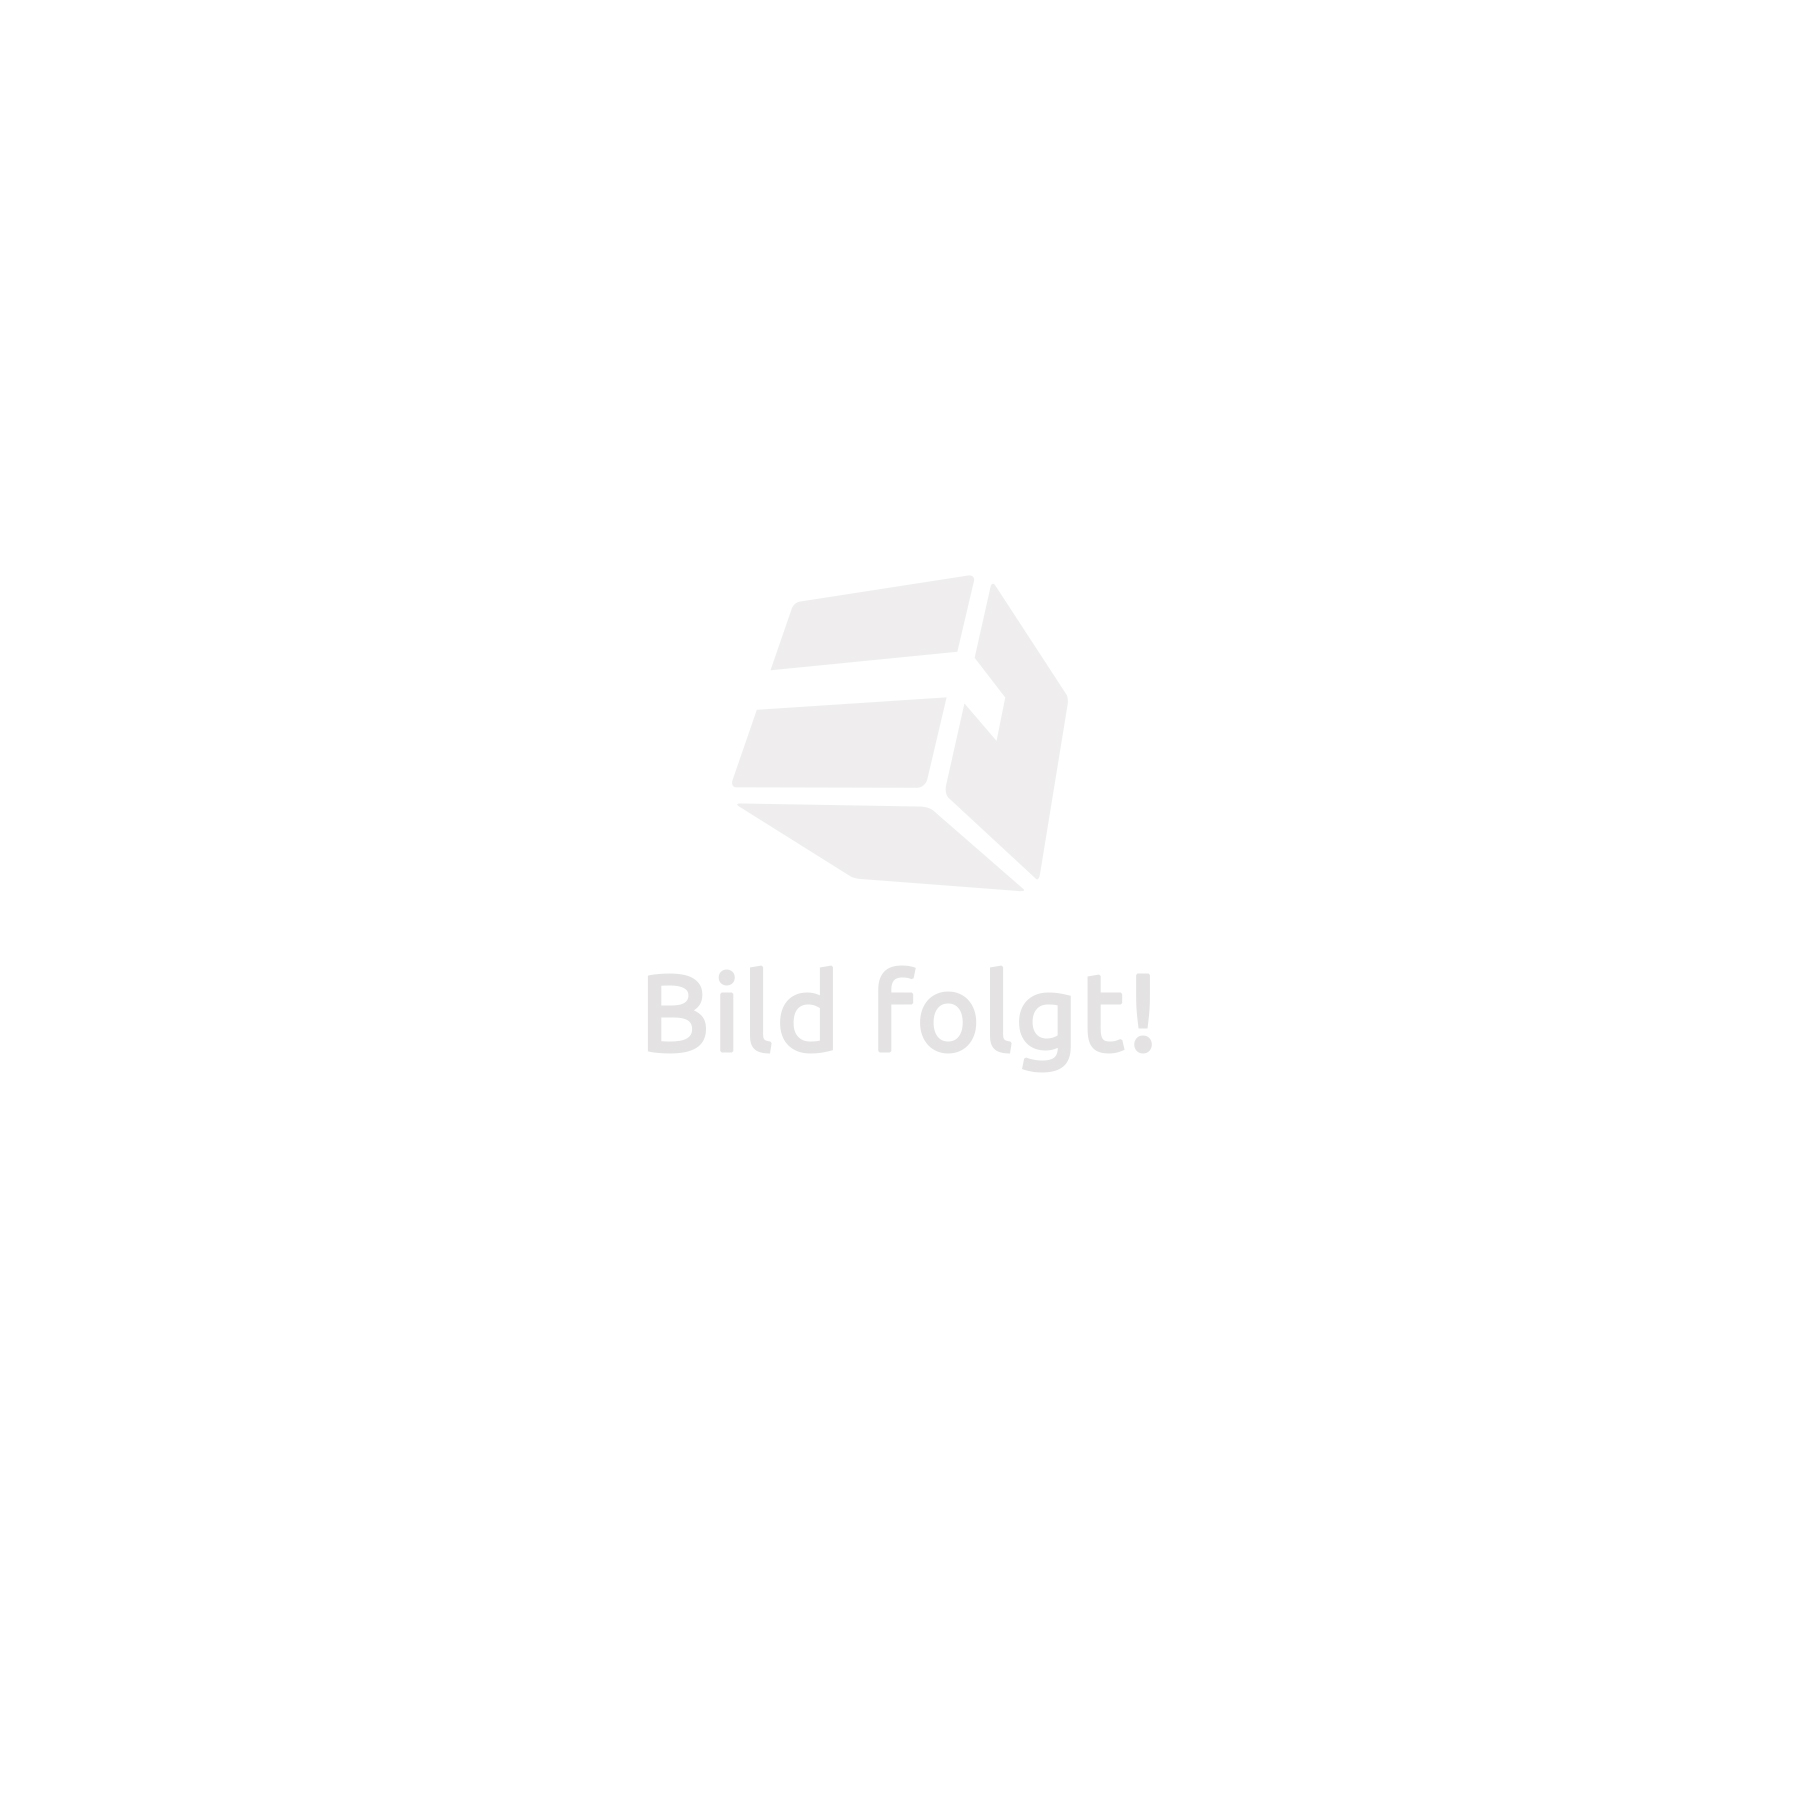 Duschablage Zum H?ngen : Stainless Steel Shower Shelves